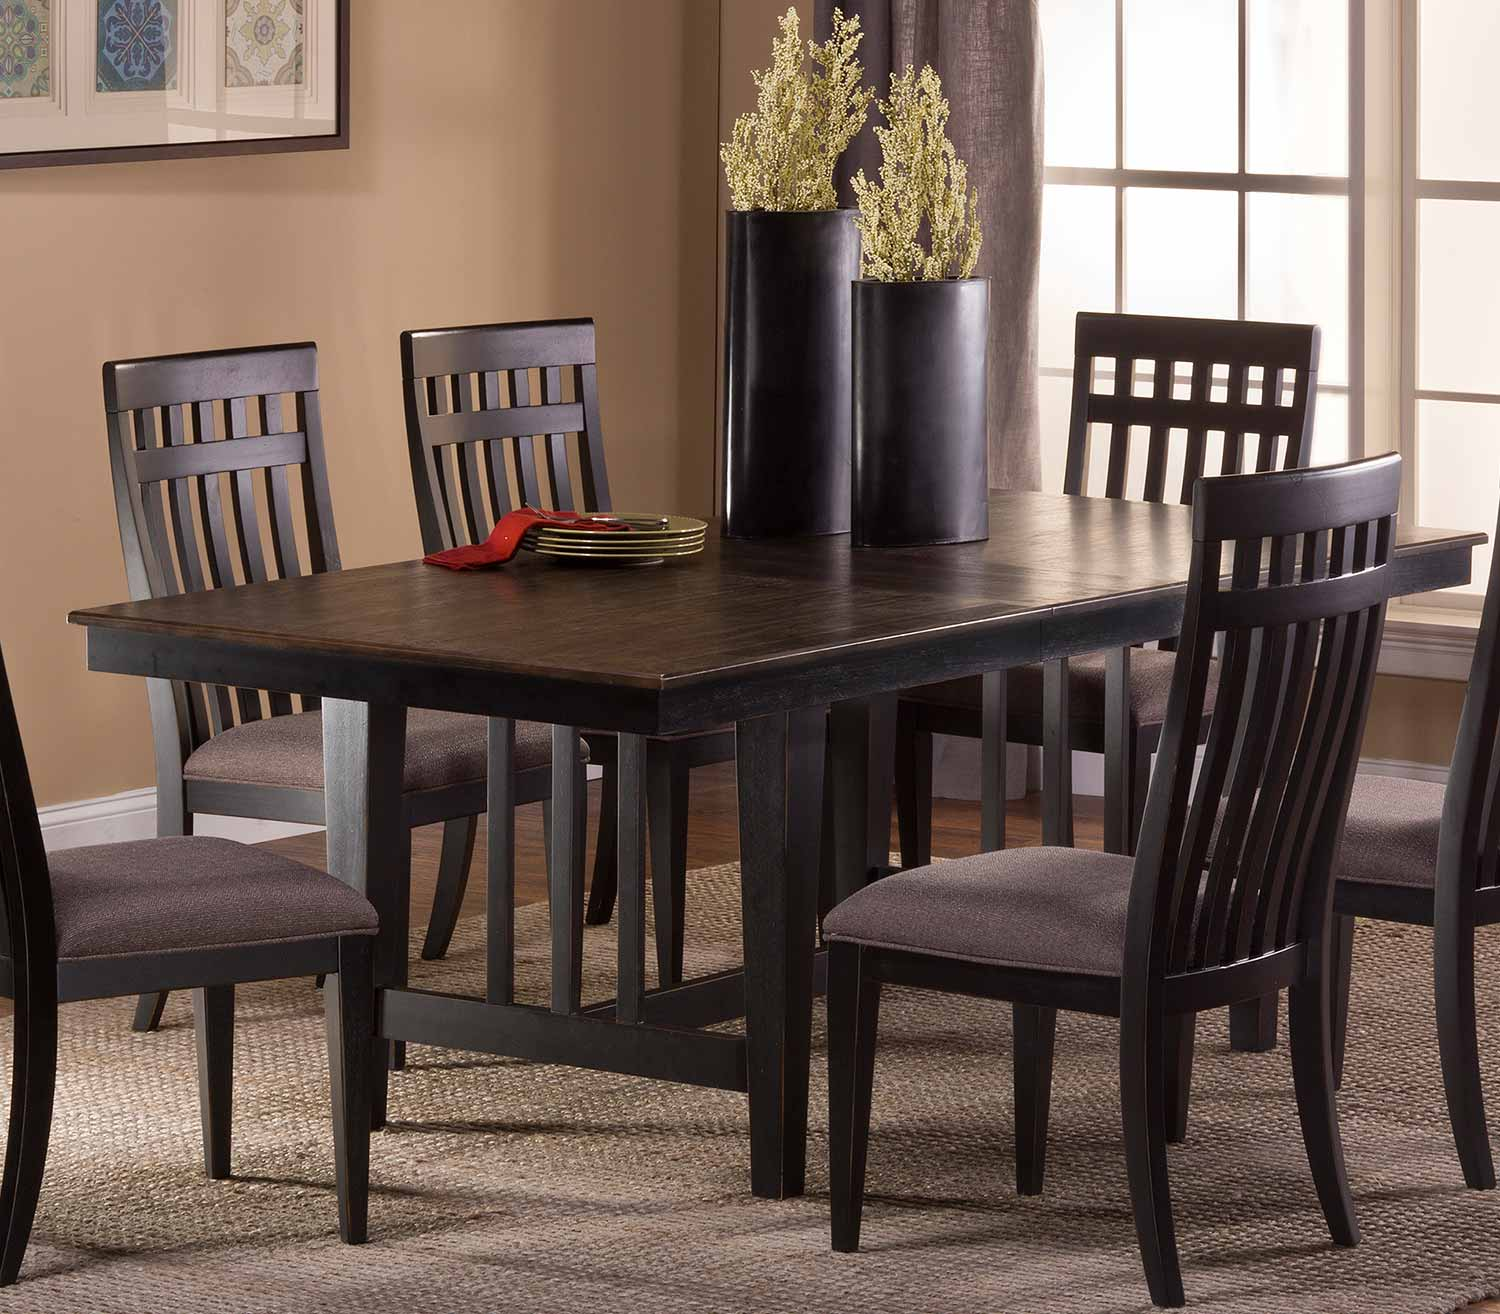 Hillsdale Copeland 5 PC Dining Set - Distressed Black - Woven Gray Fabric